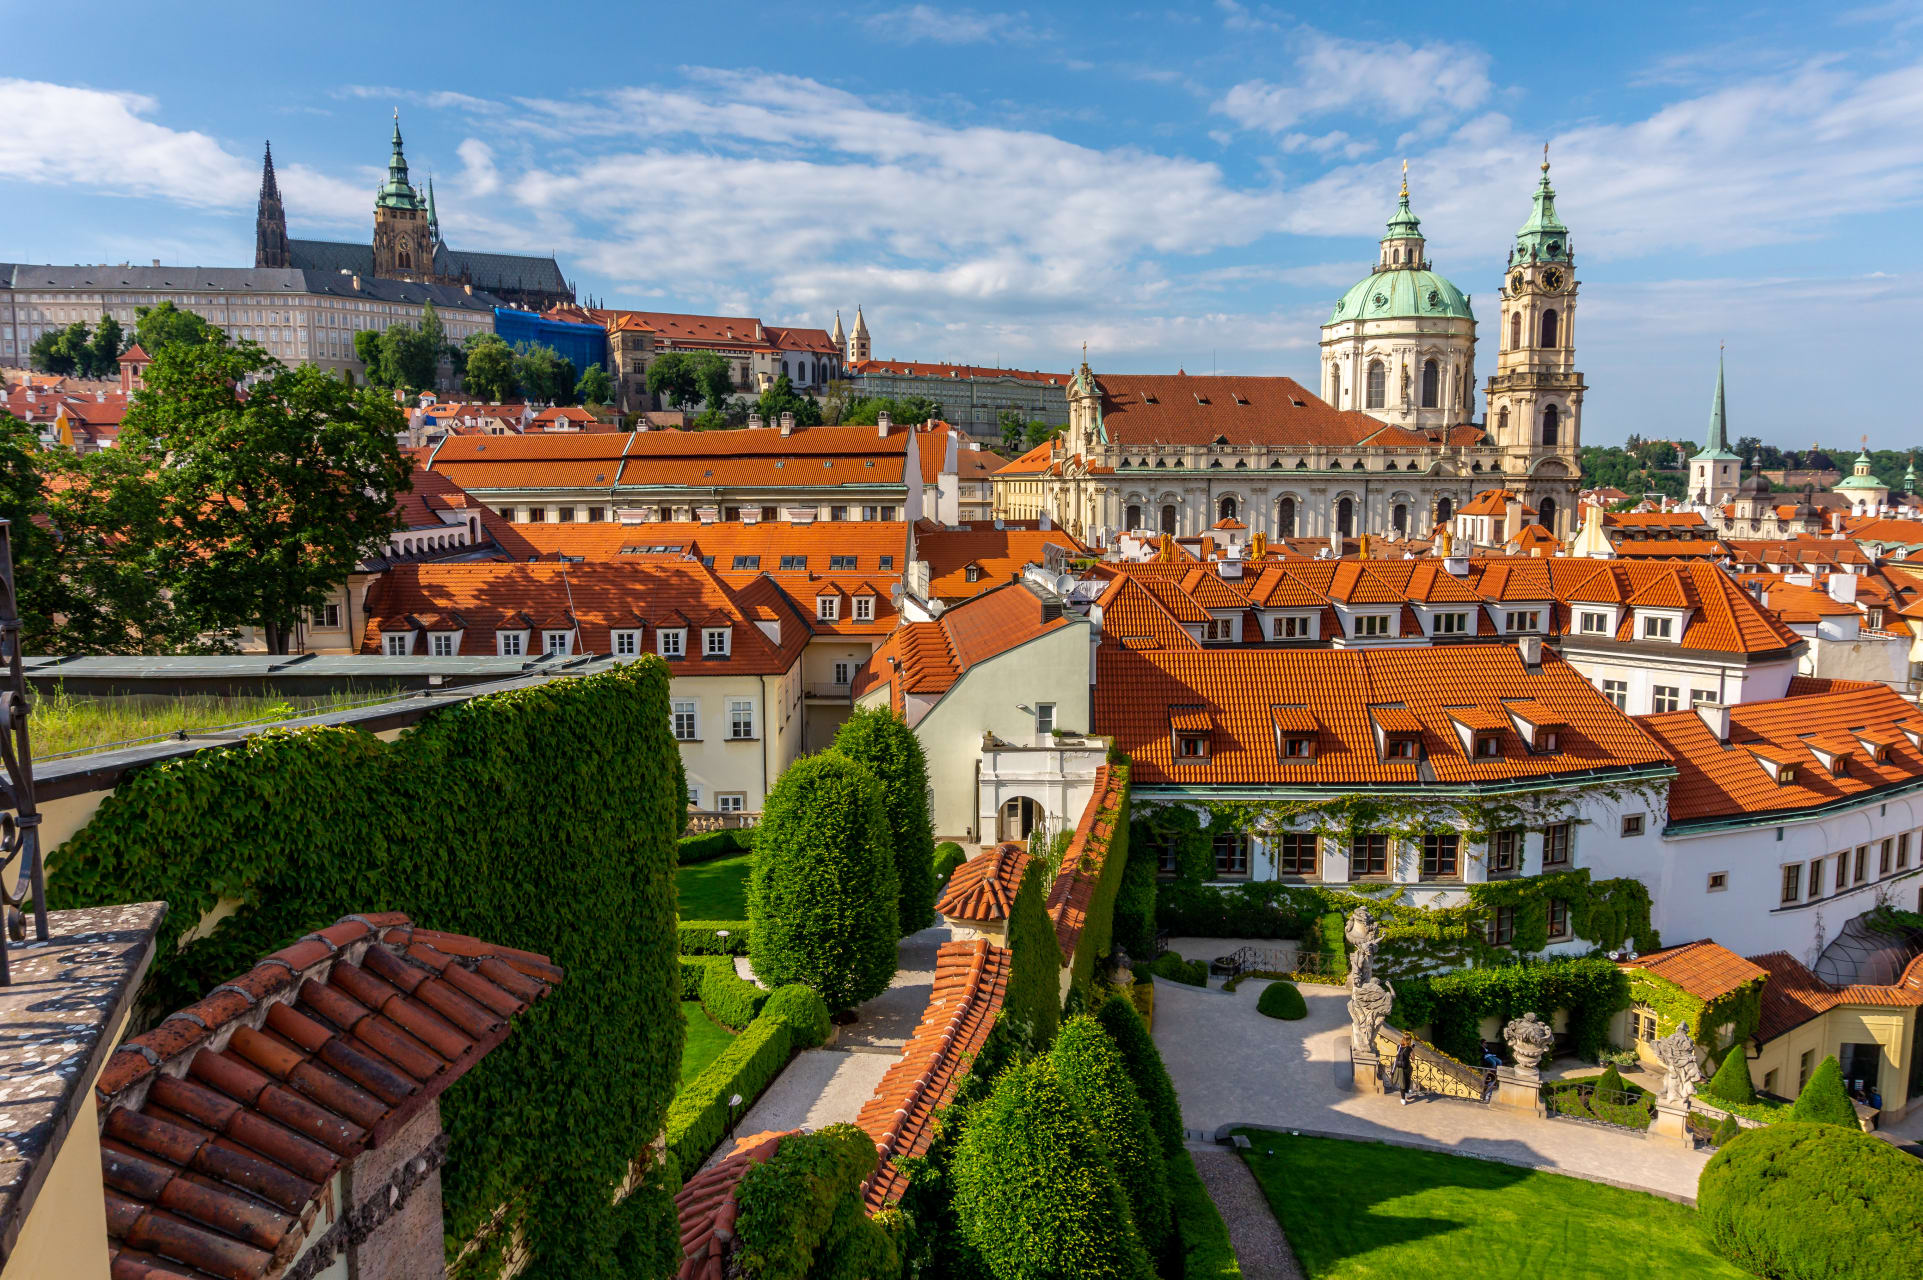 Prague - Once in a year experience - Discover the Most Beautiful Baroque Garden in Europe Magically Illuminated at Night